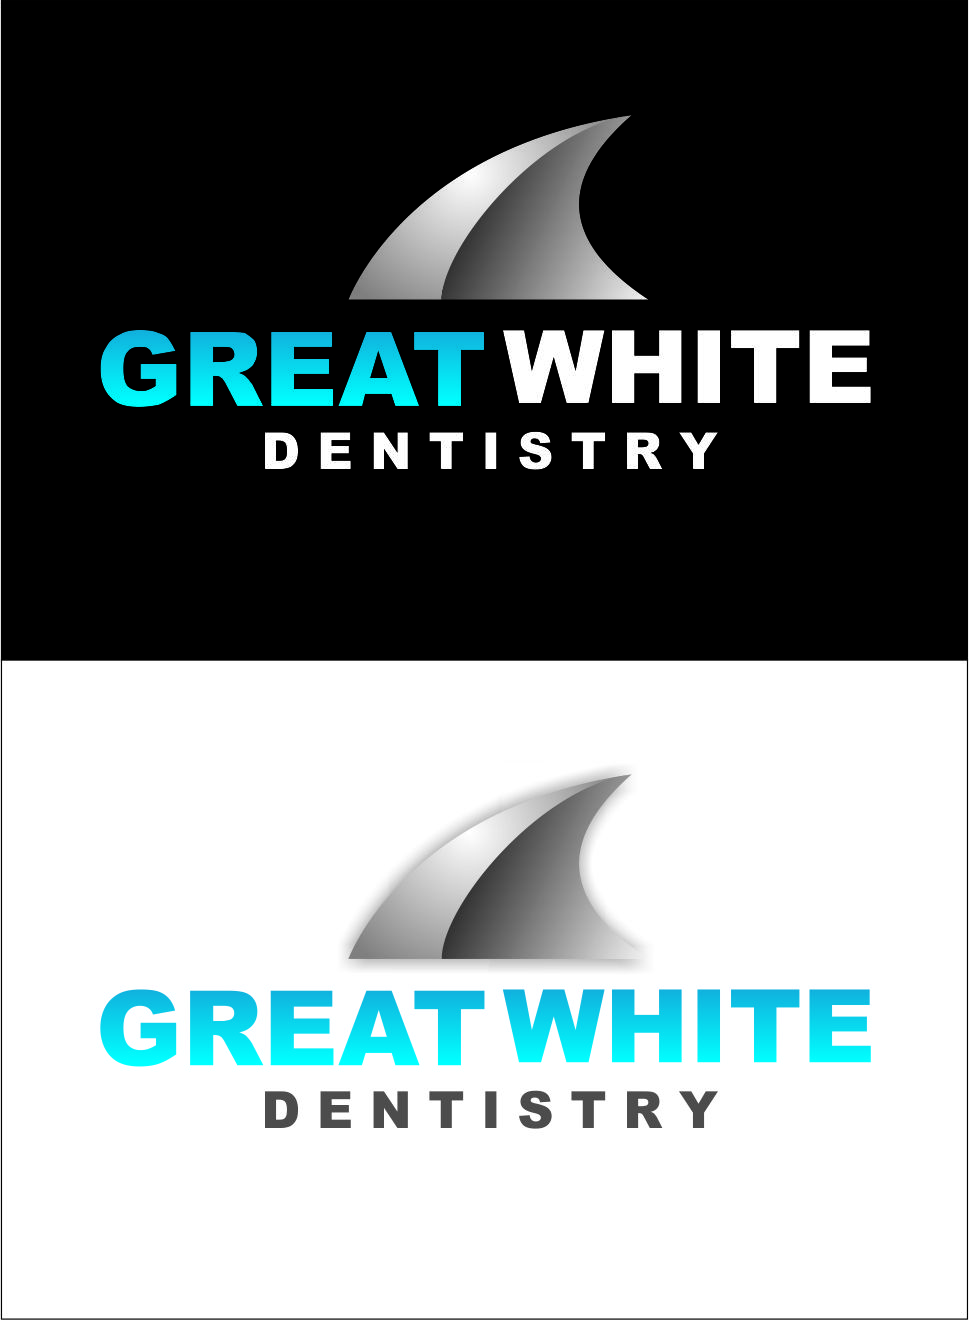 Logo Design by Agus Martoyo - Entry No. 158 in the Logo Design Contest Logo Design for Great White Dentistry.